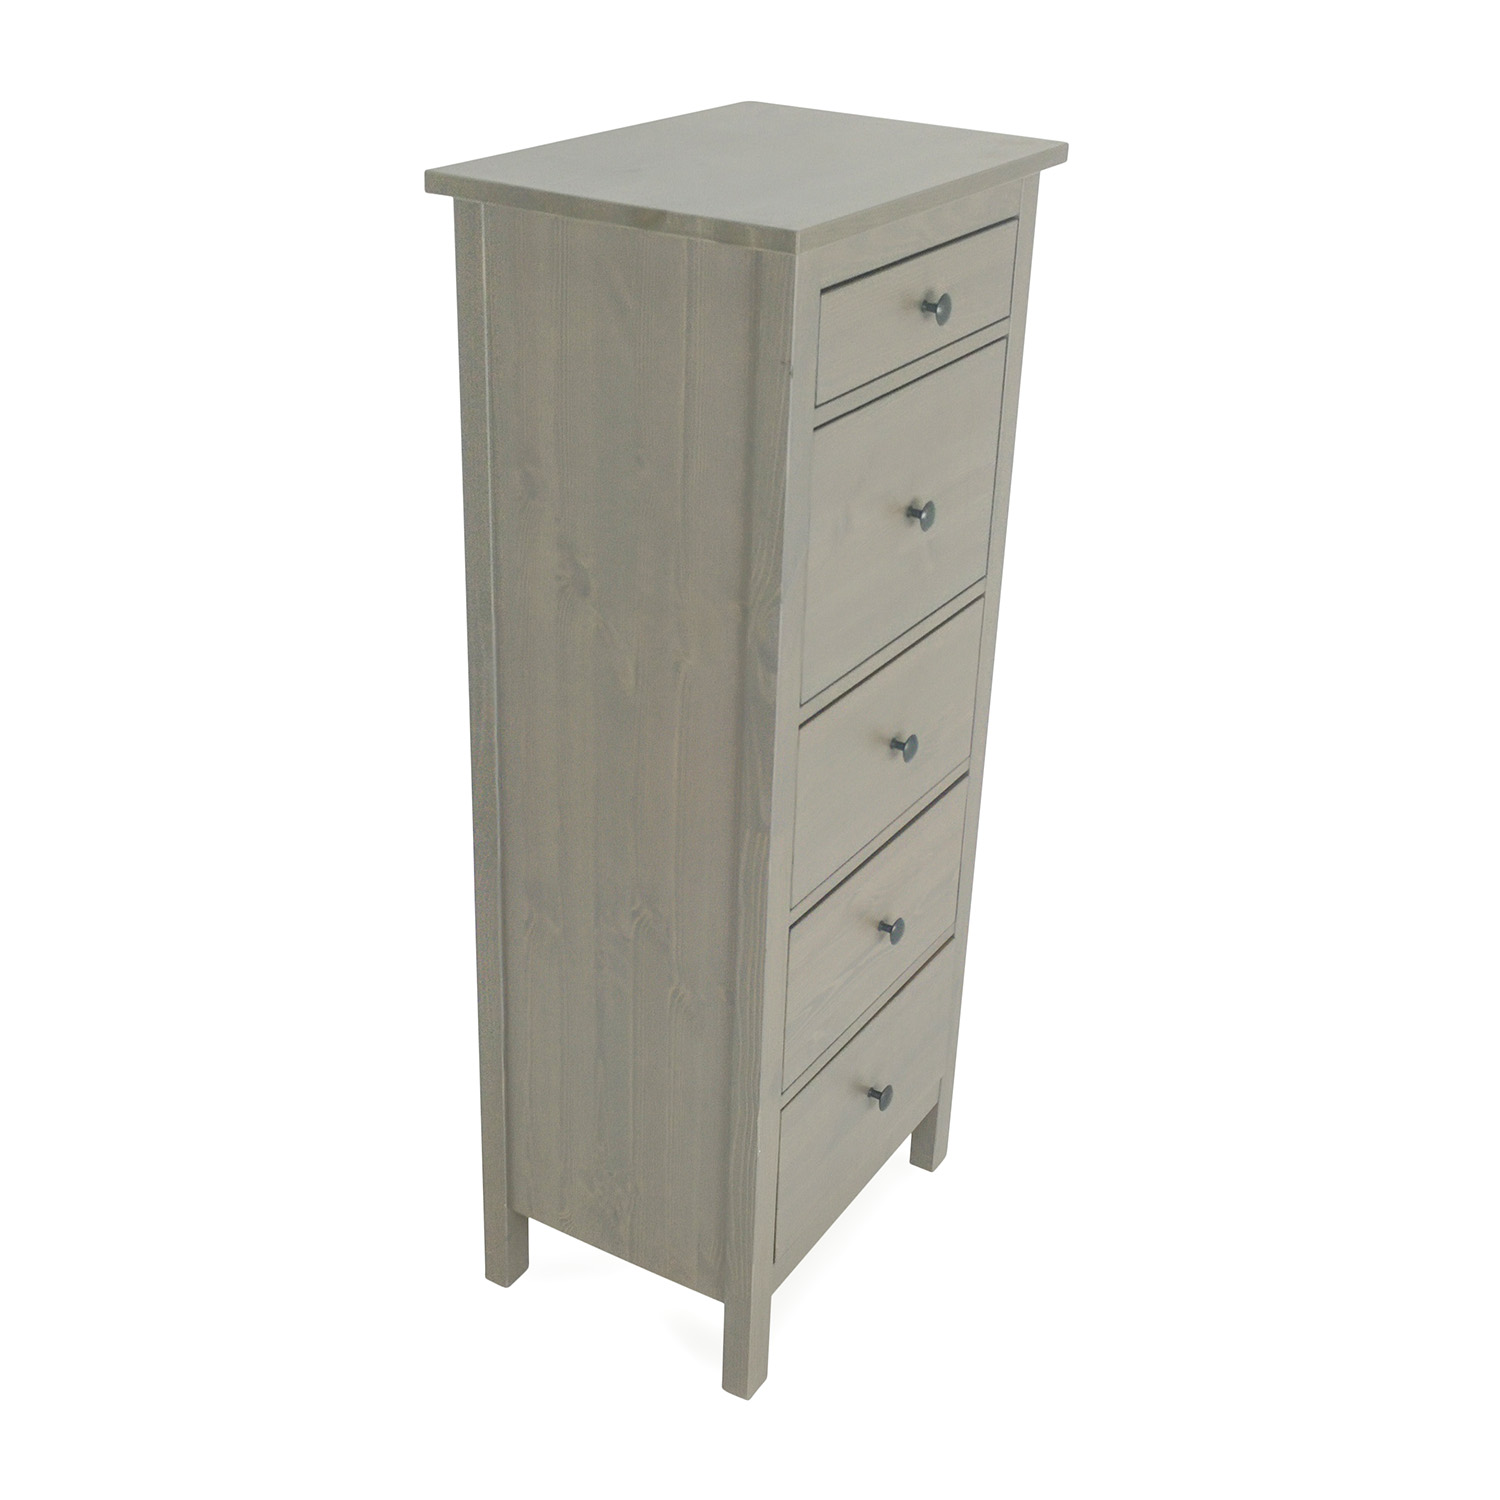 51 Off Ikea Tall Dresser Storage